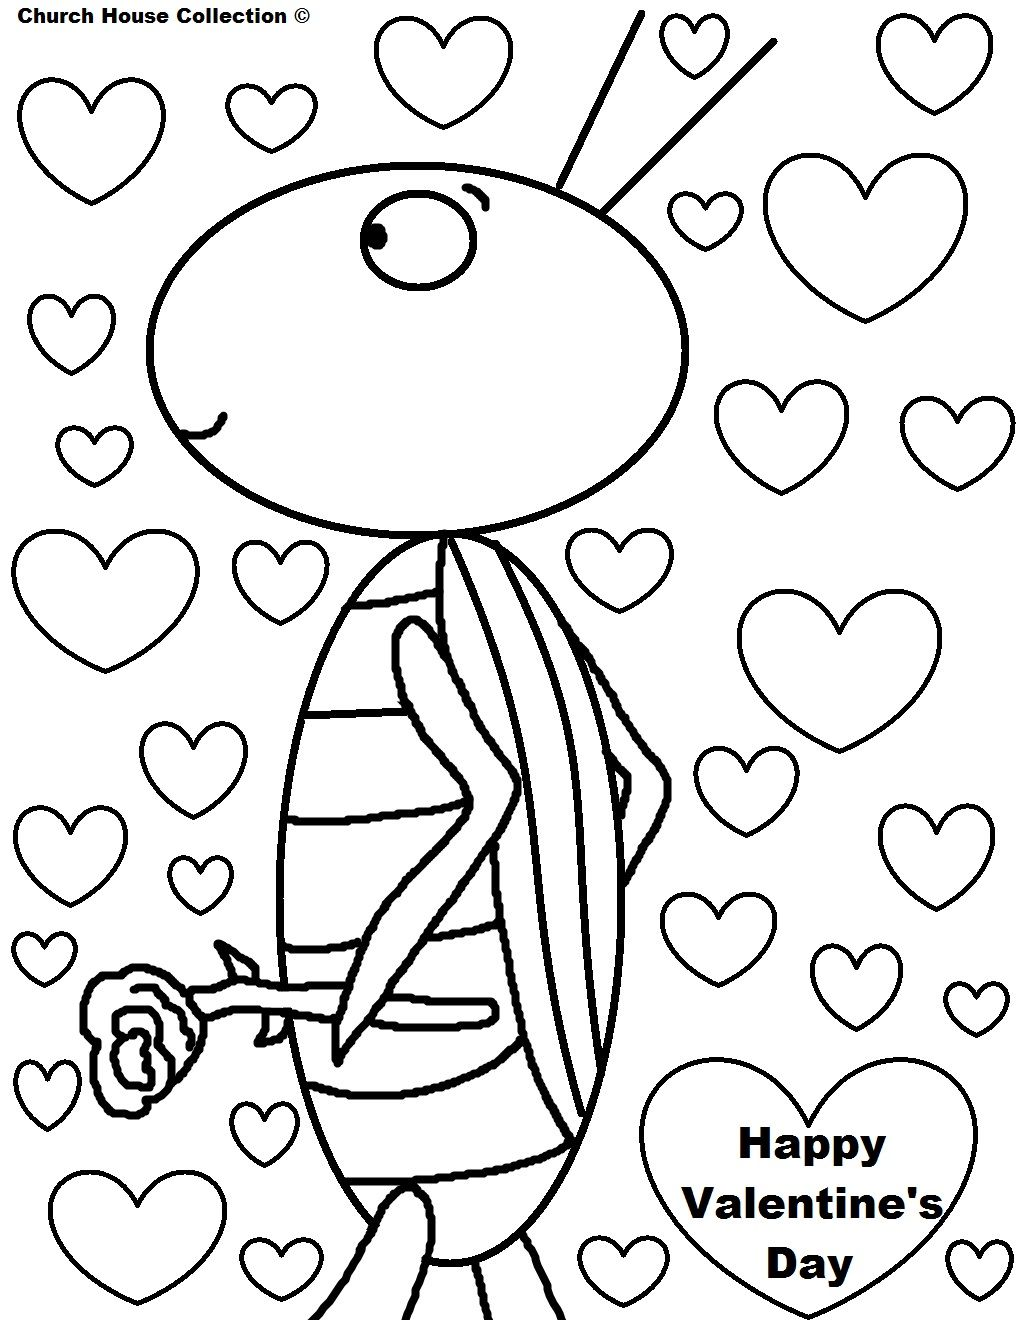 Coloring Pages Valentine Day Printable Coloring Pages Free free printable valentines day coloring pages futpal com 1000 images about february u0026amp valentine sheets on